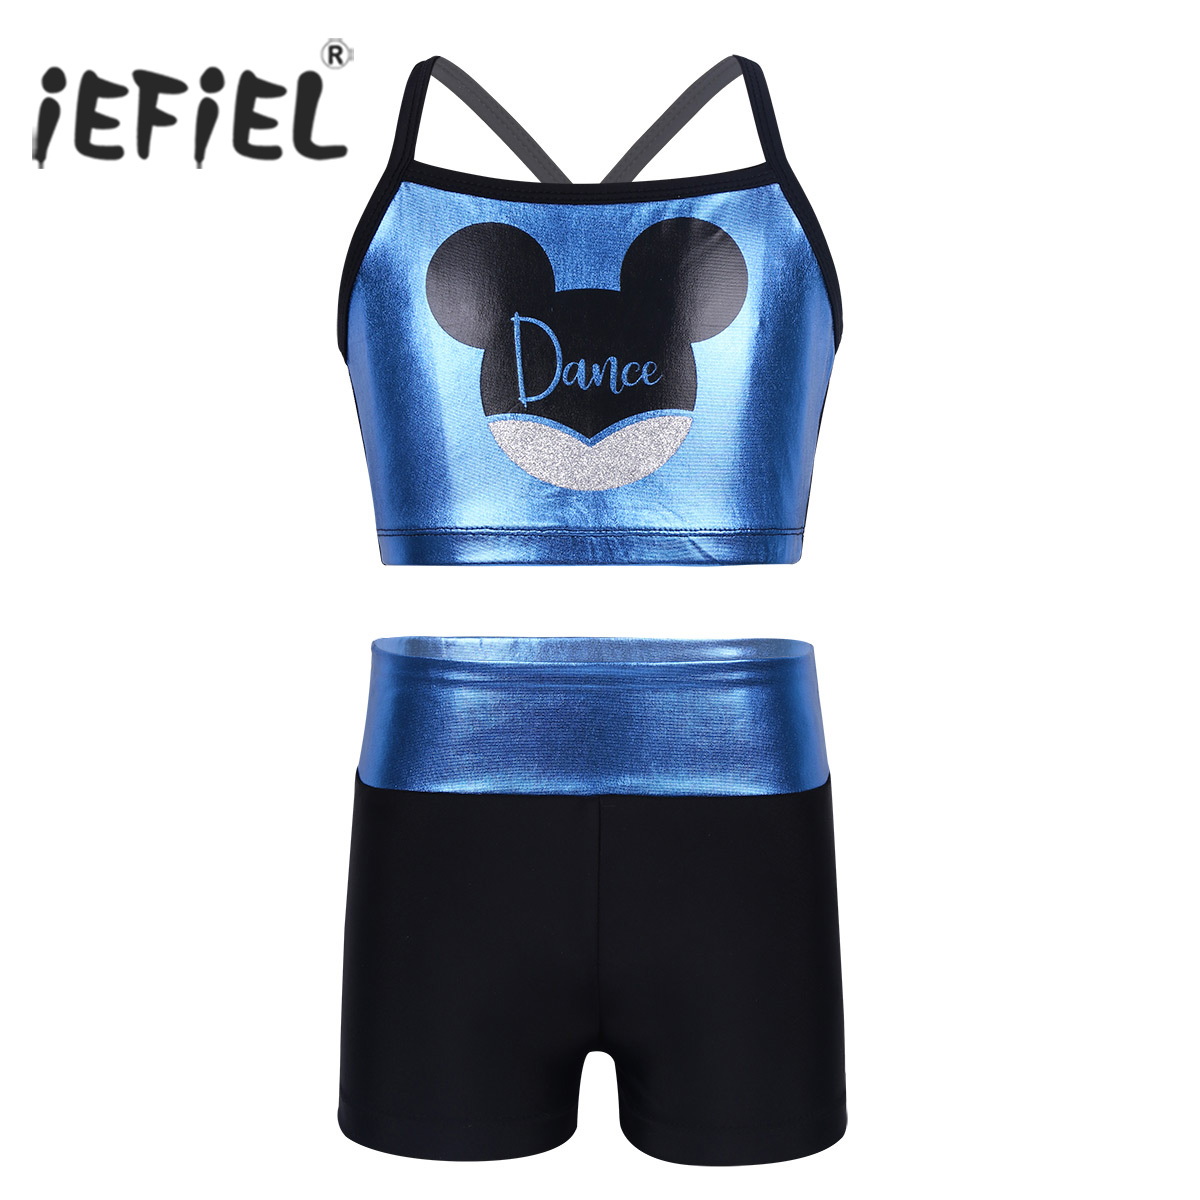 Kids Girls Dancewear Outfit Costumes Cartoon Animal Pattern Letters Dance Printed Tank Top with Shorts Set for Ballet Dancewear